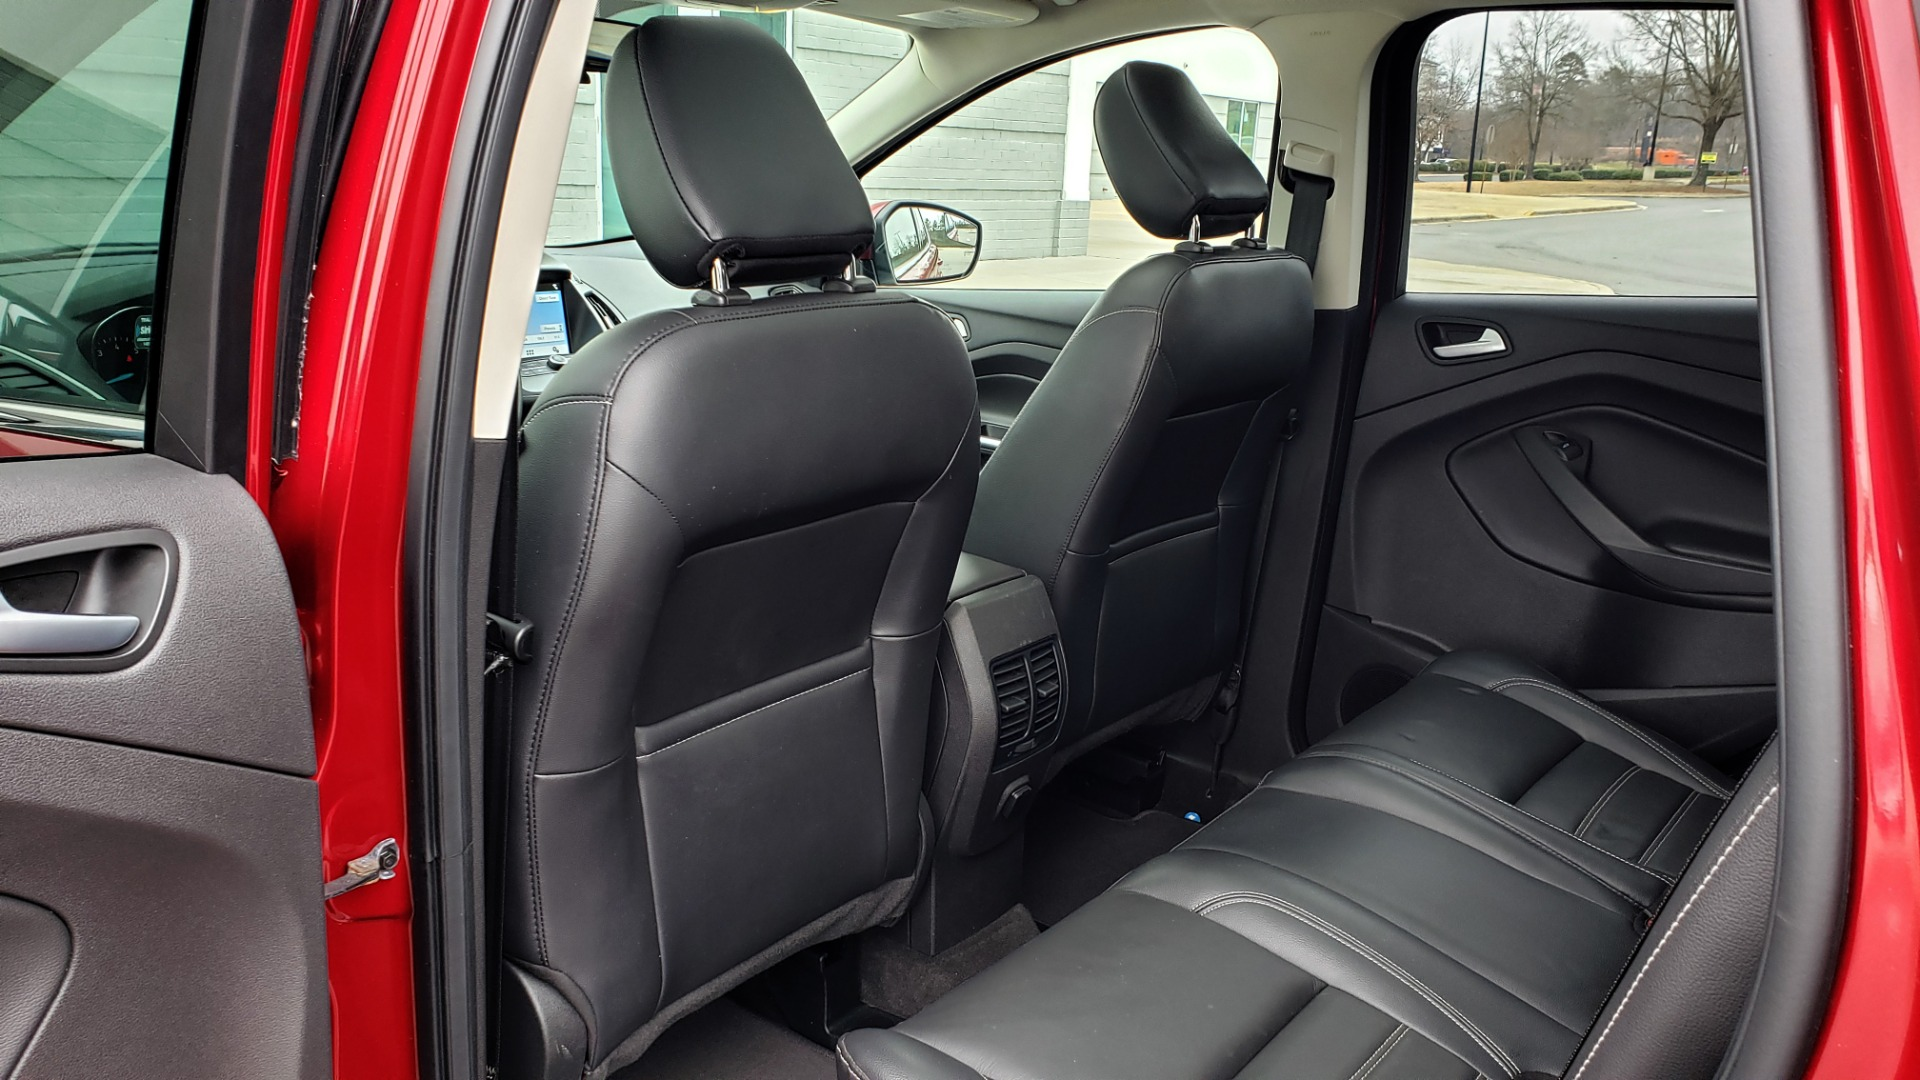 Used 2018 Ford ESCAPE SEL / FWD / 1.5L ECOBOOST / PANO-ROOF / REARVIEW for sale Sold at Formula Imports in Charlotte NC 28227 62